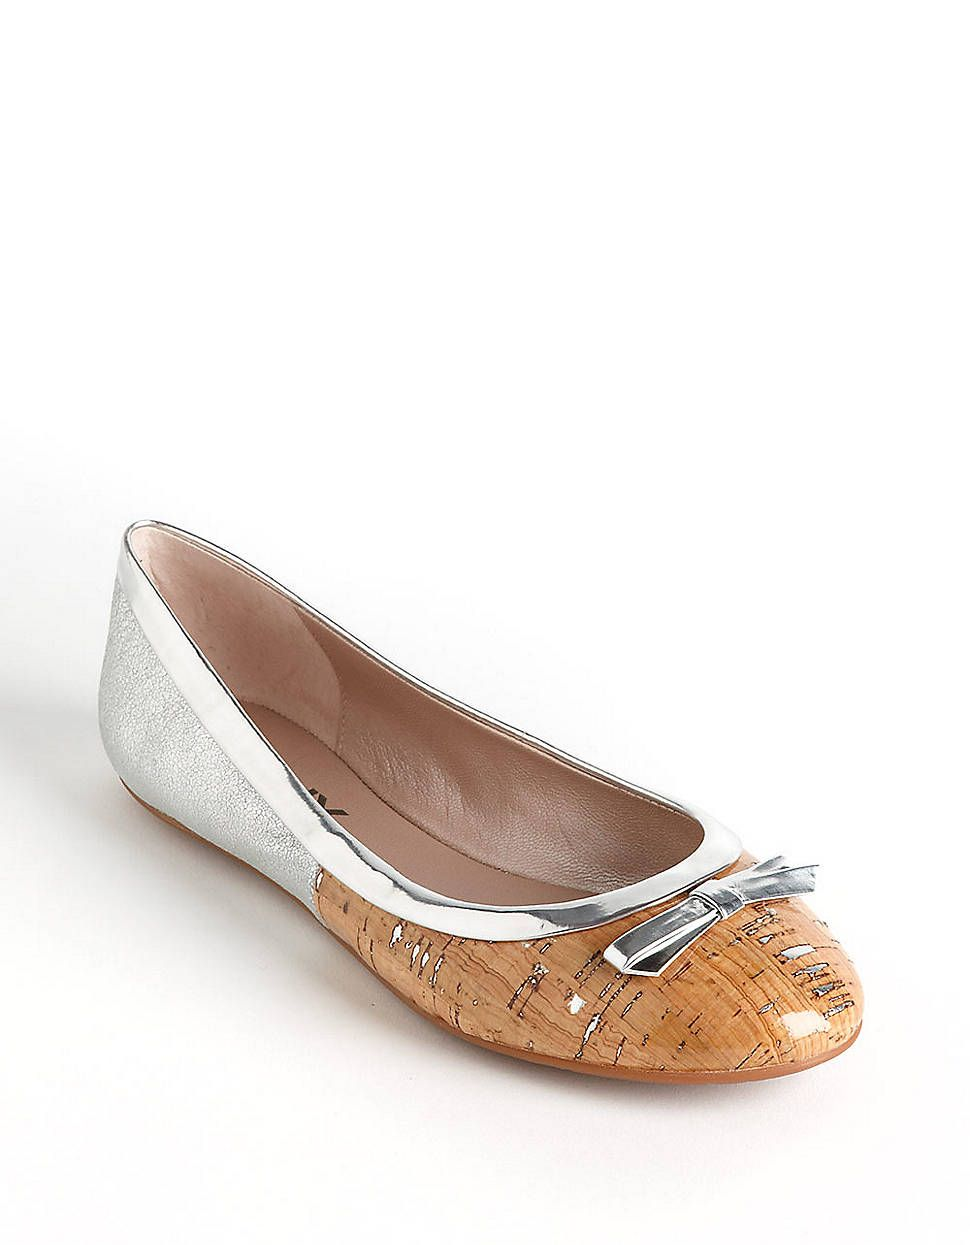 Abby Leather Ballet Flats | Lord and Taylor